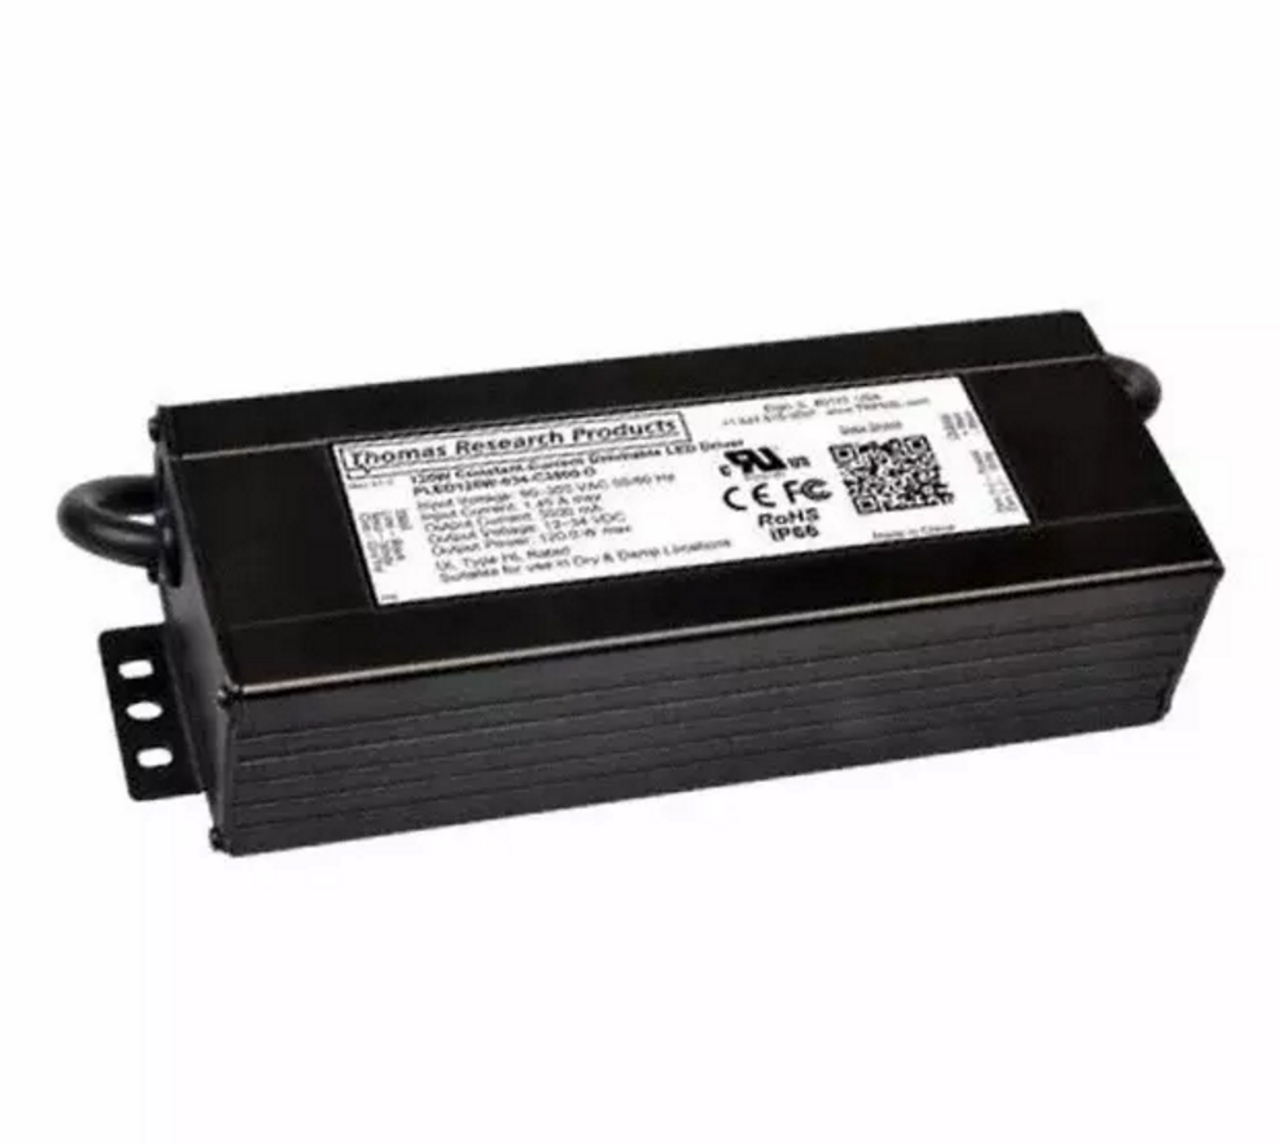 96W Thomas Research Products Dimmable Driver